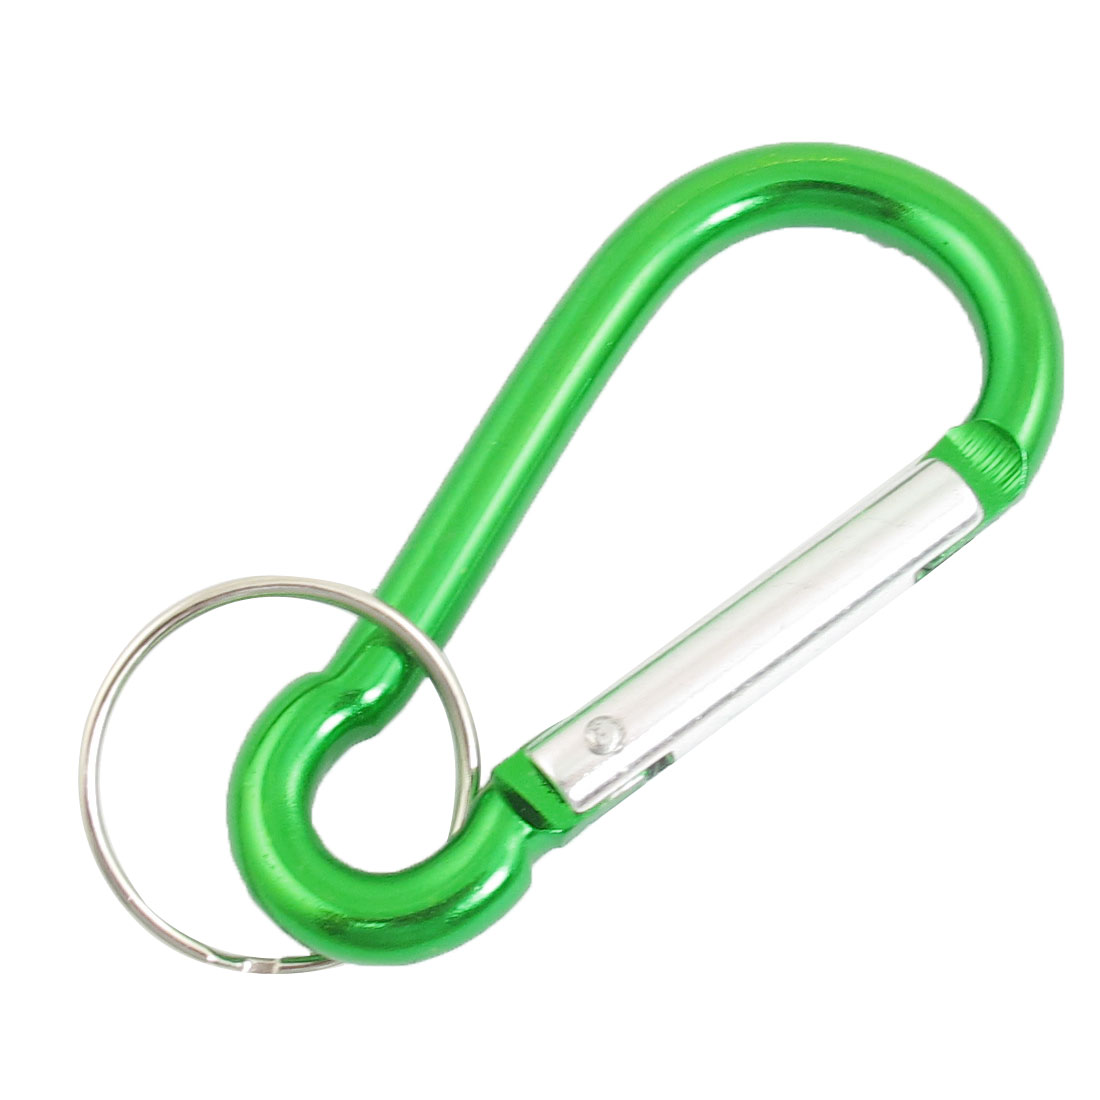 2 Pcs Travel Spring Loaded Gate 6.3mm Dia Green Carabiner Hook w Key Ring